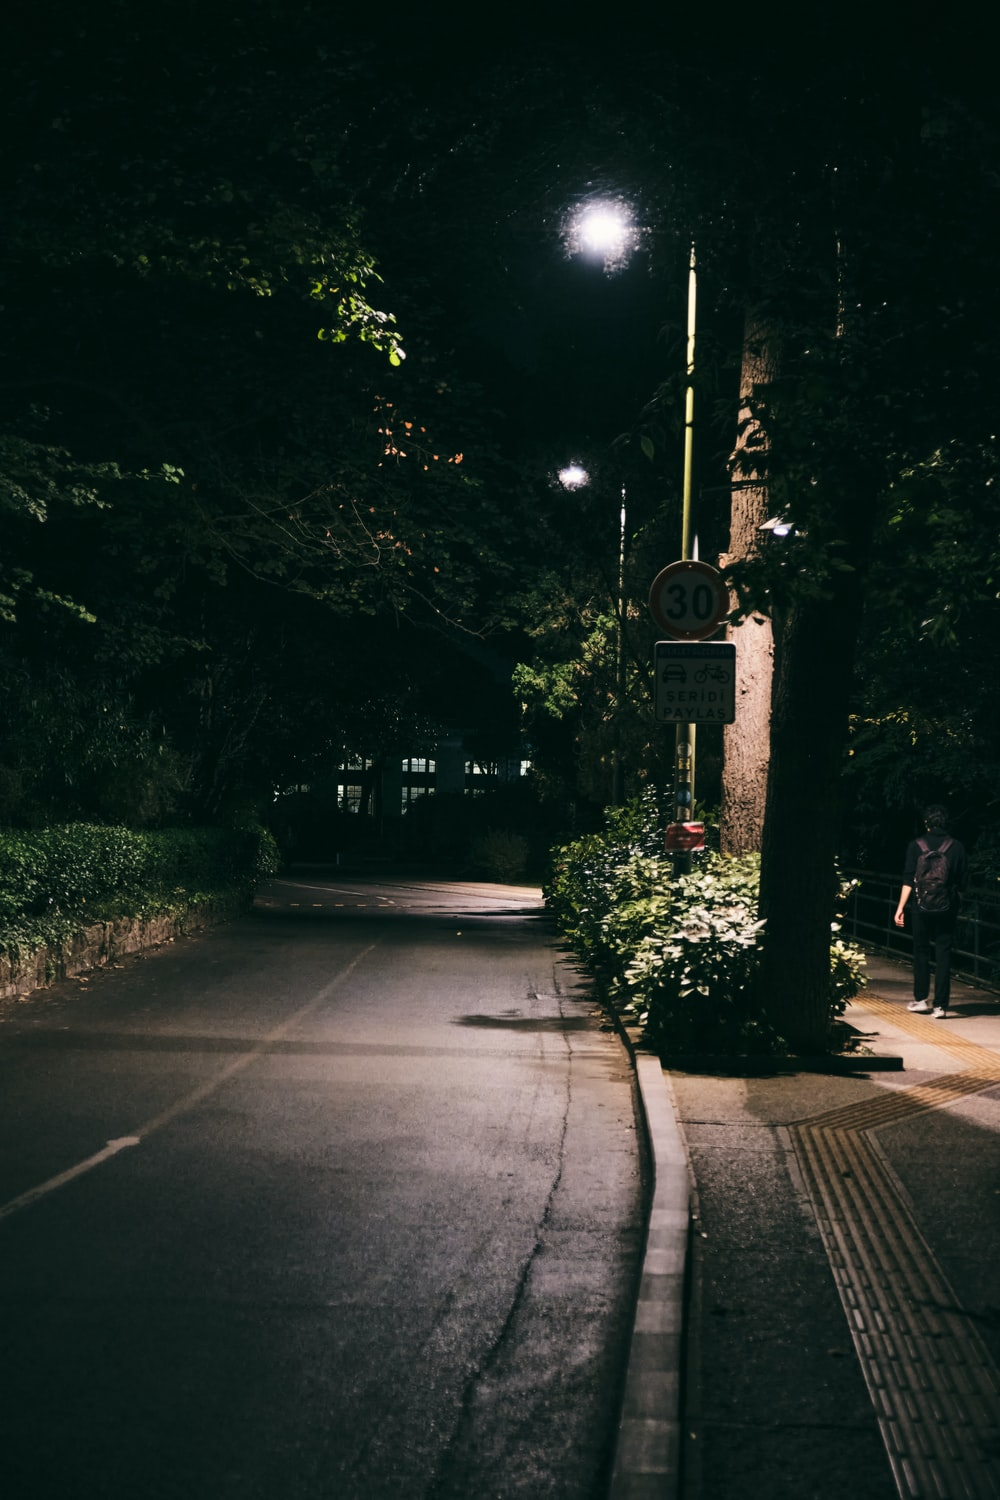 gray concrete road between green trees during night time